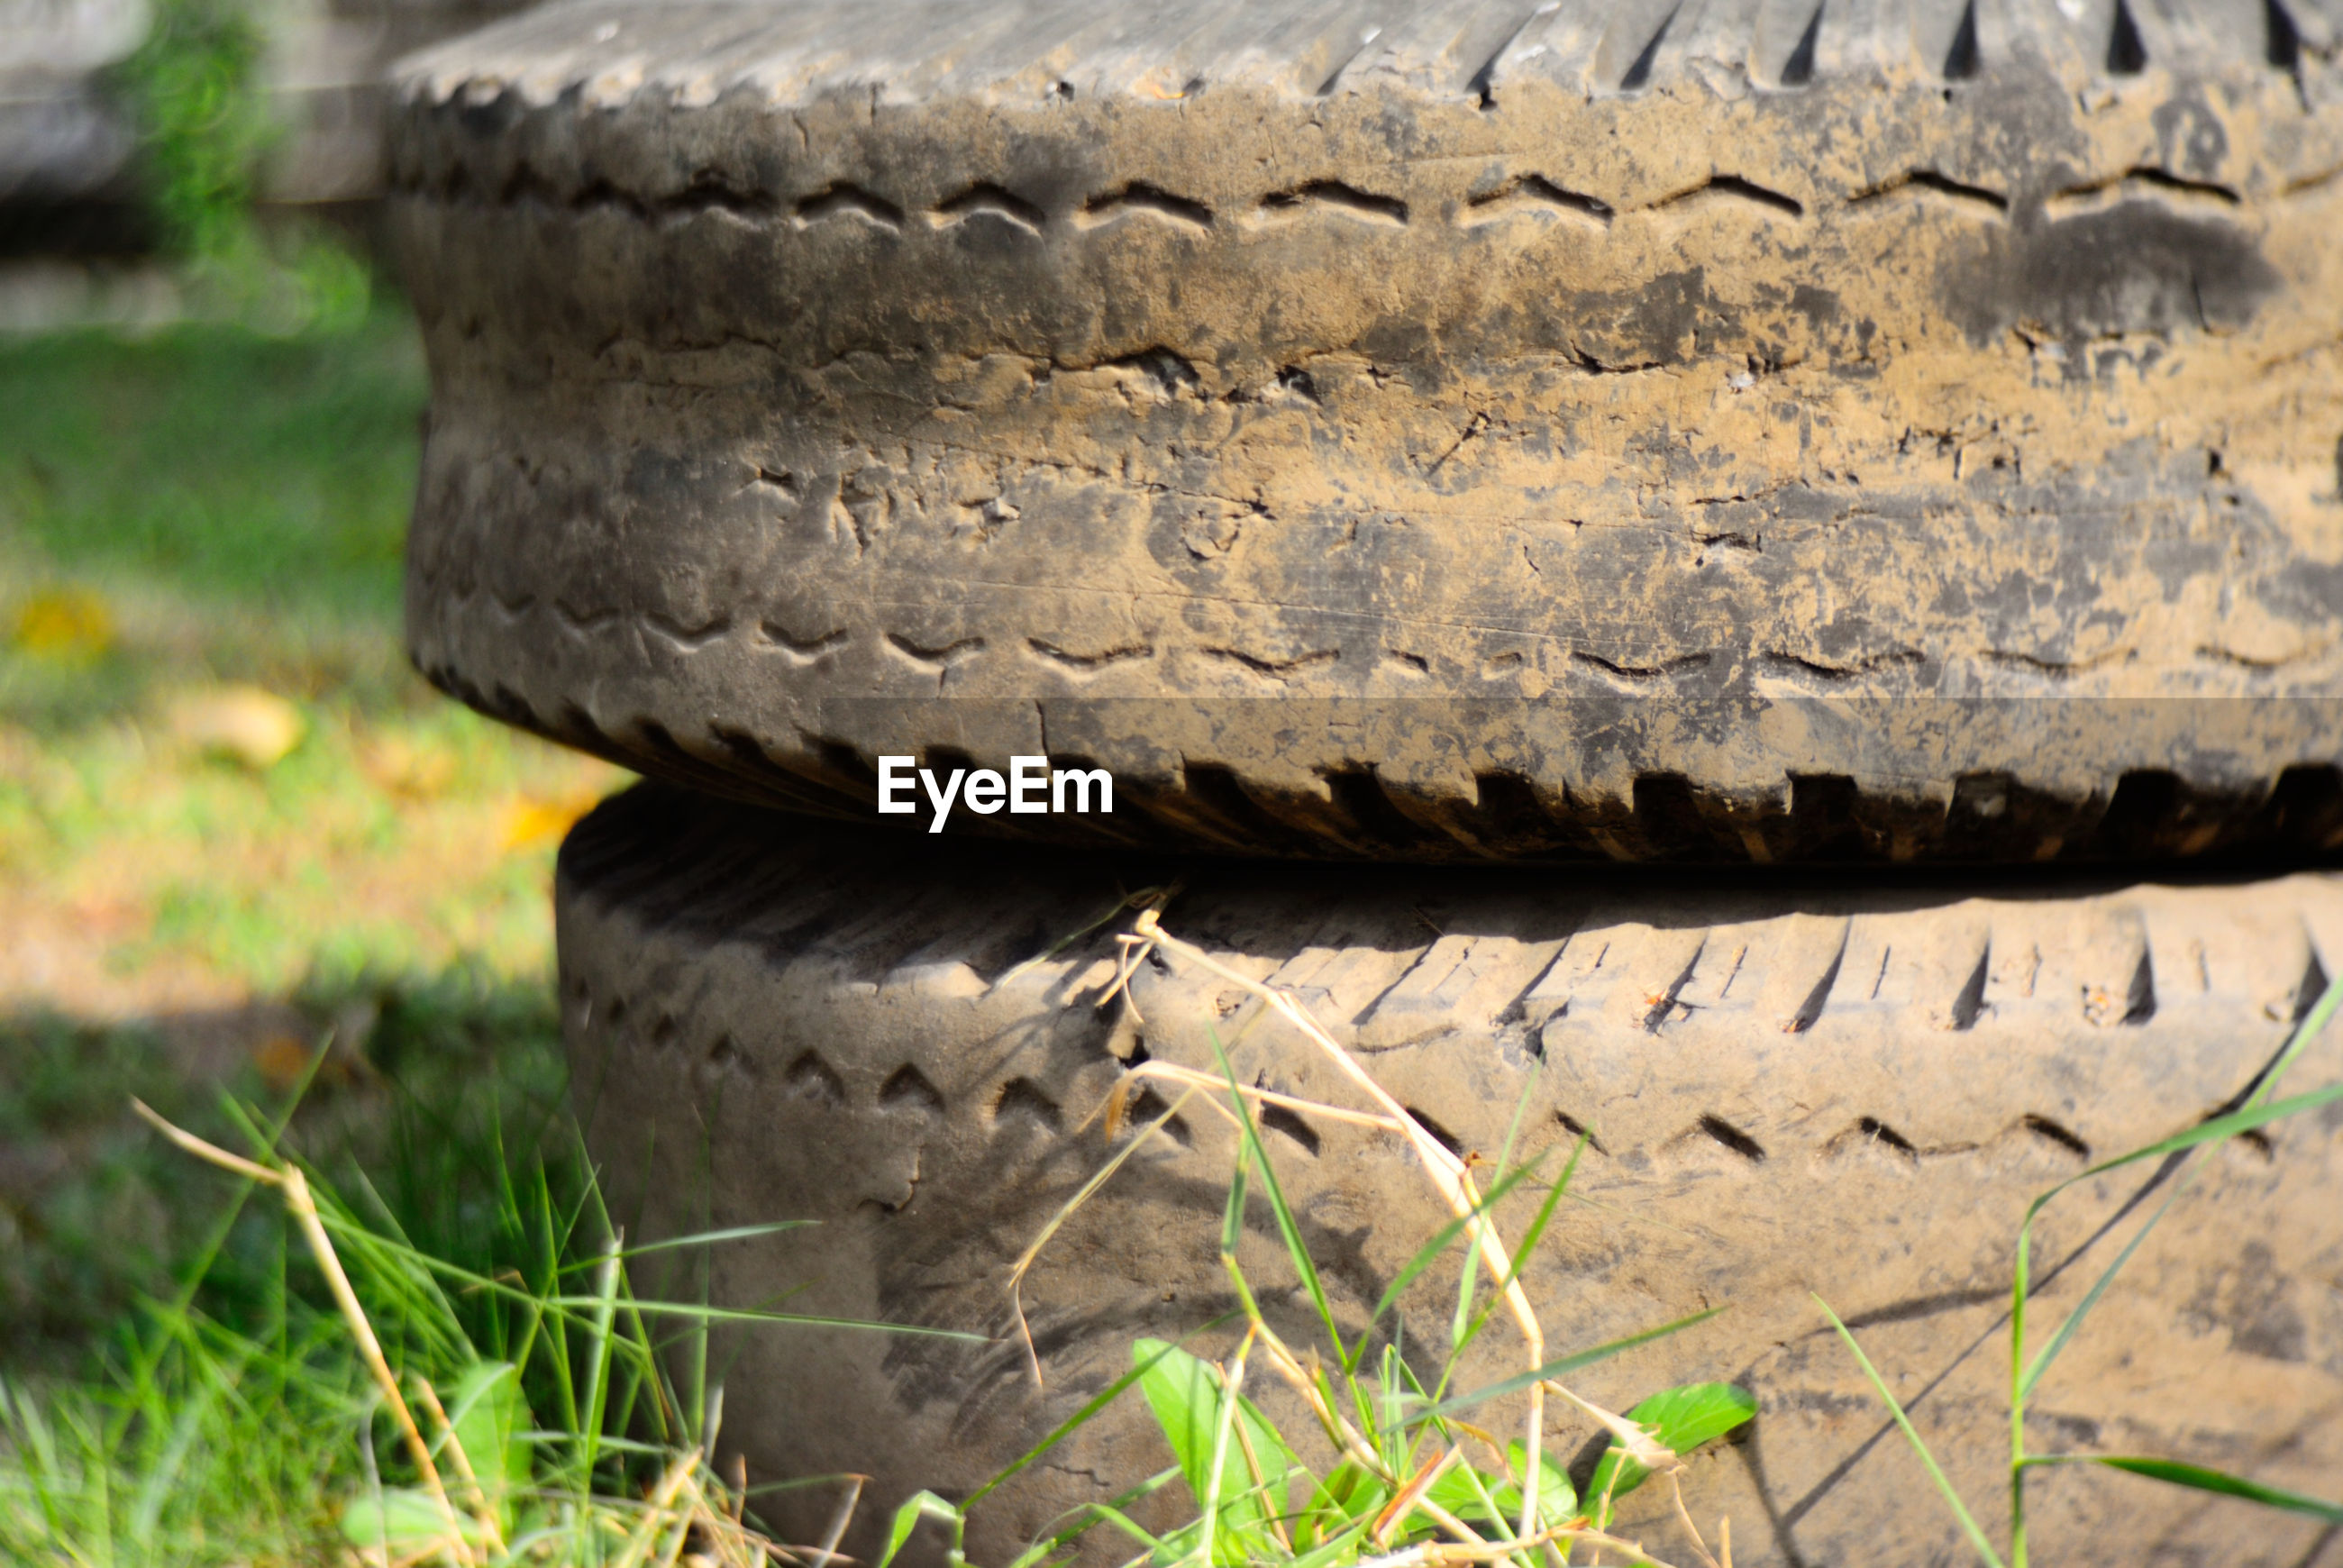 Stack of tires on grassy field